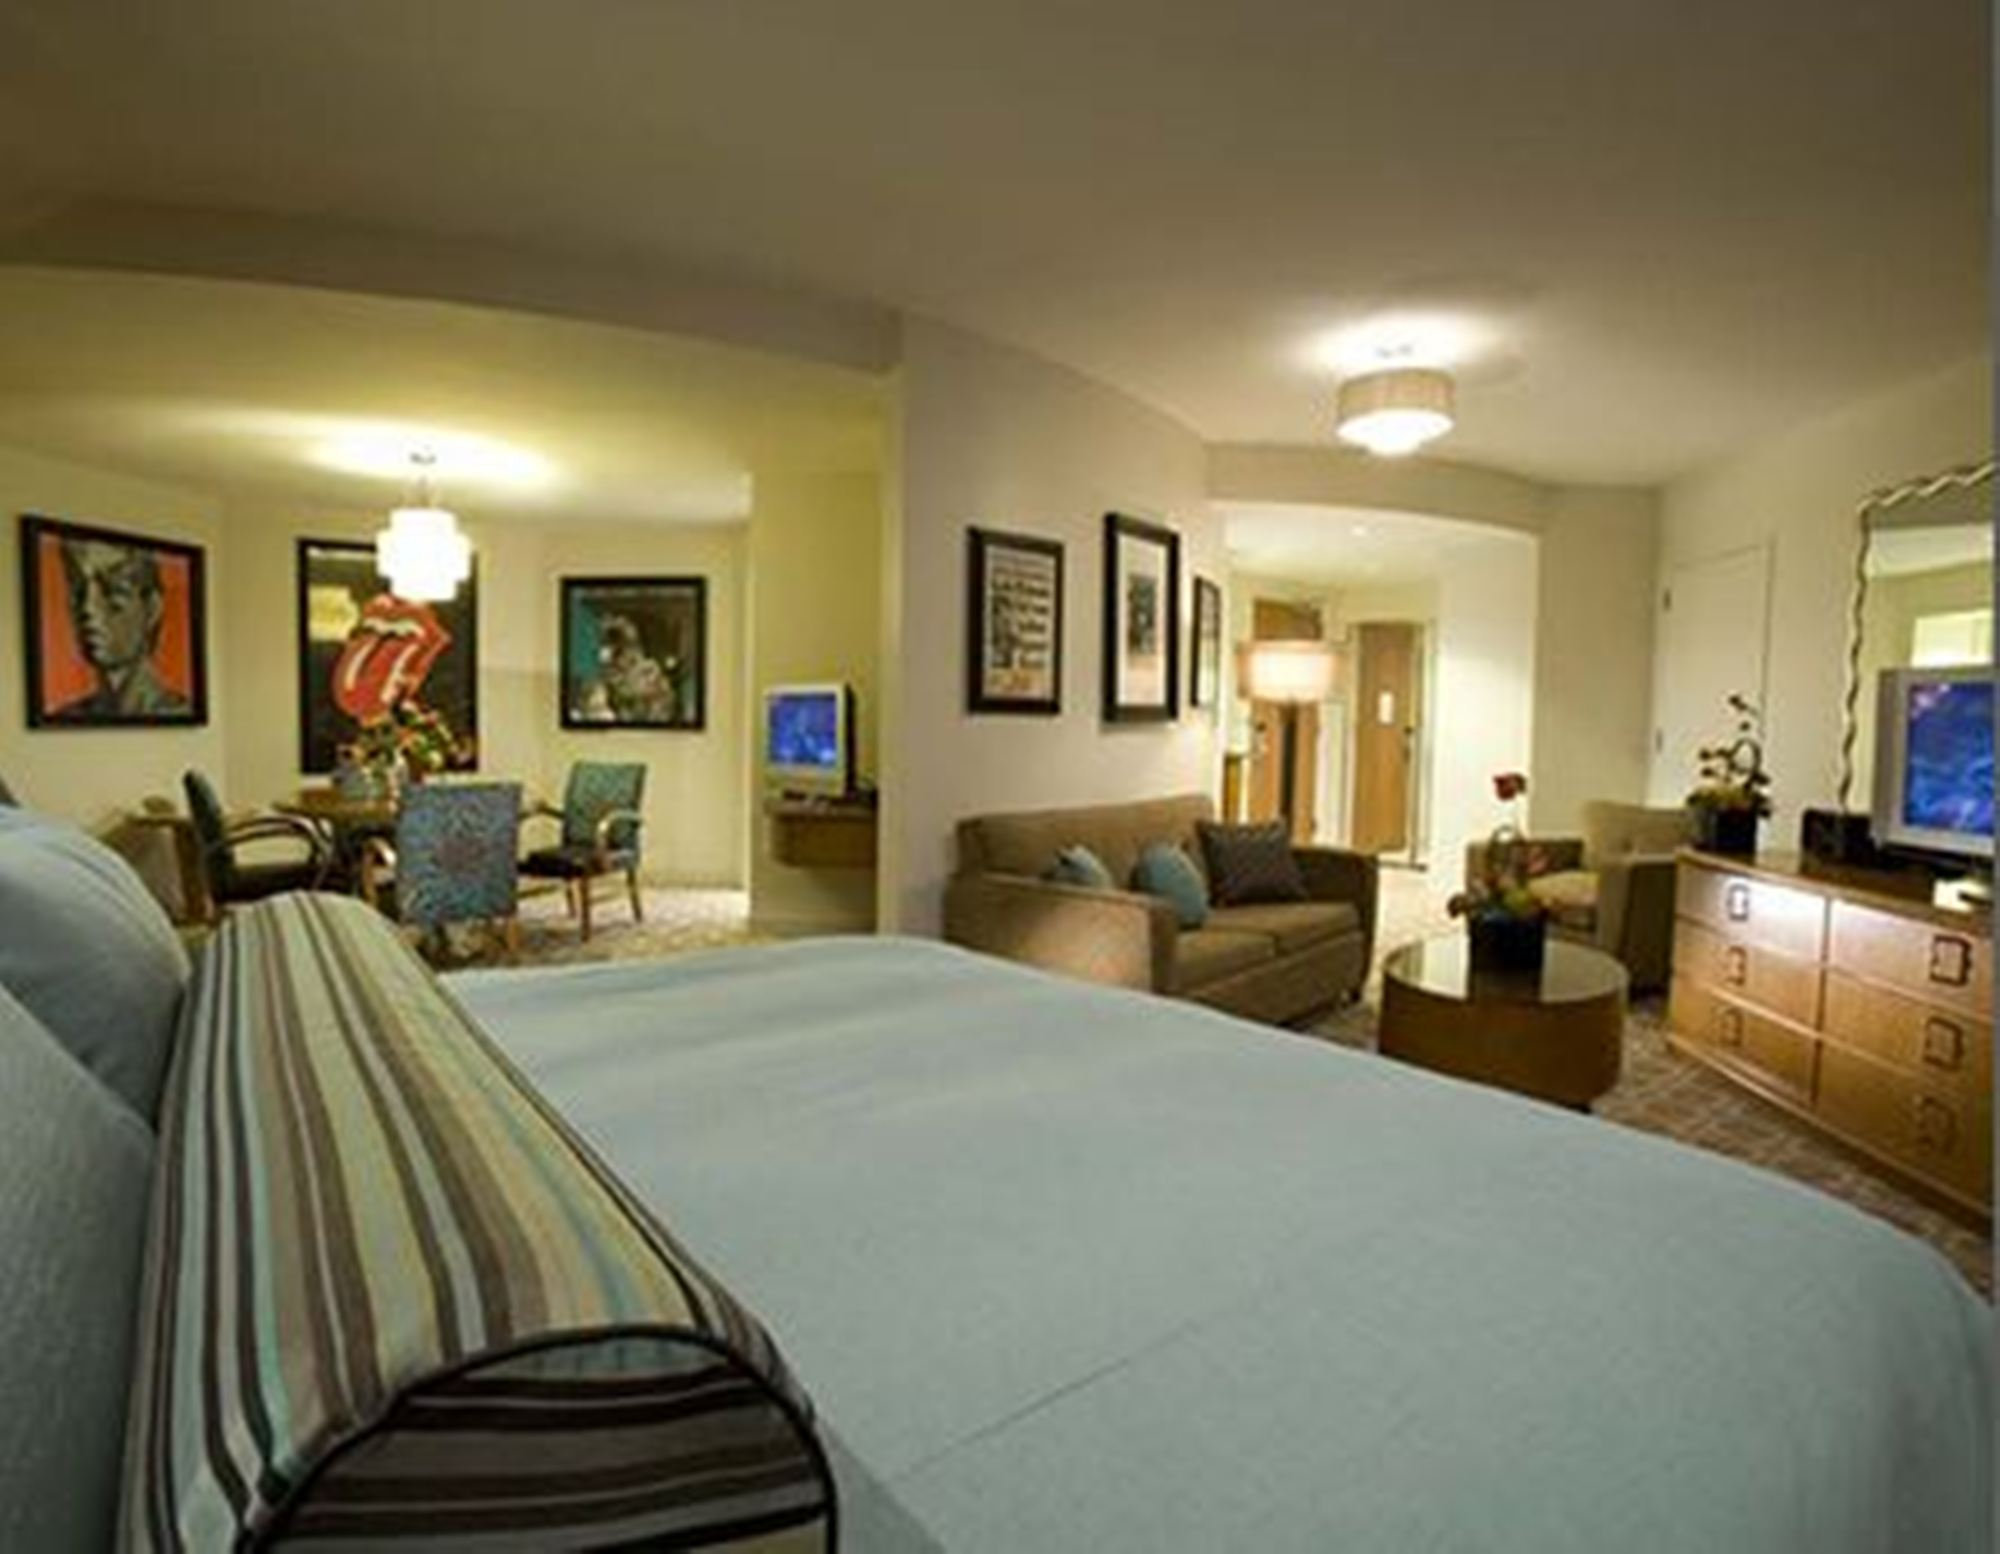 Hotel 2 Bedroom Suites In Orlando Florida Bedroom Review Design